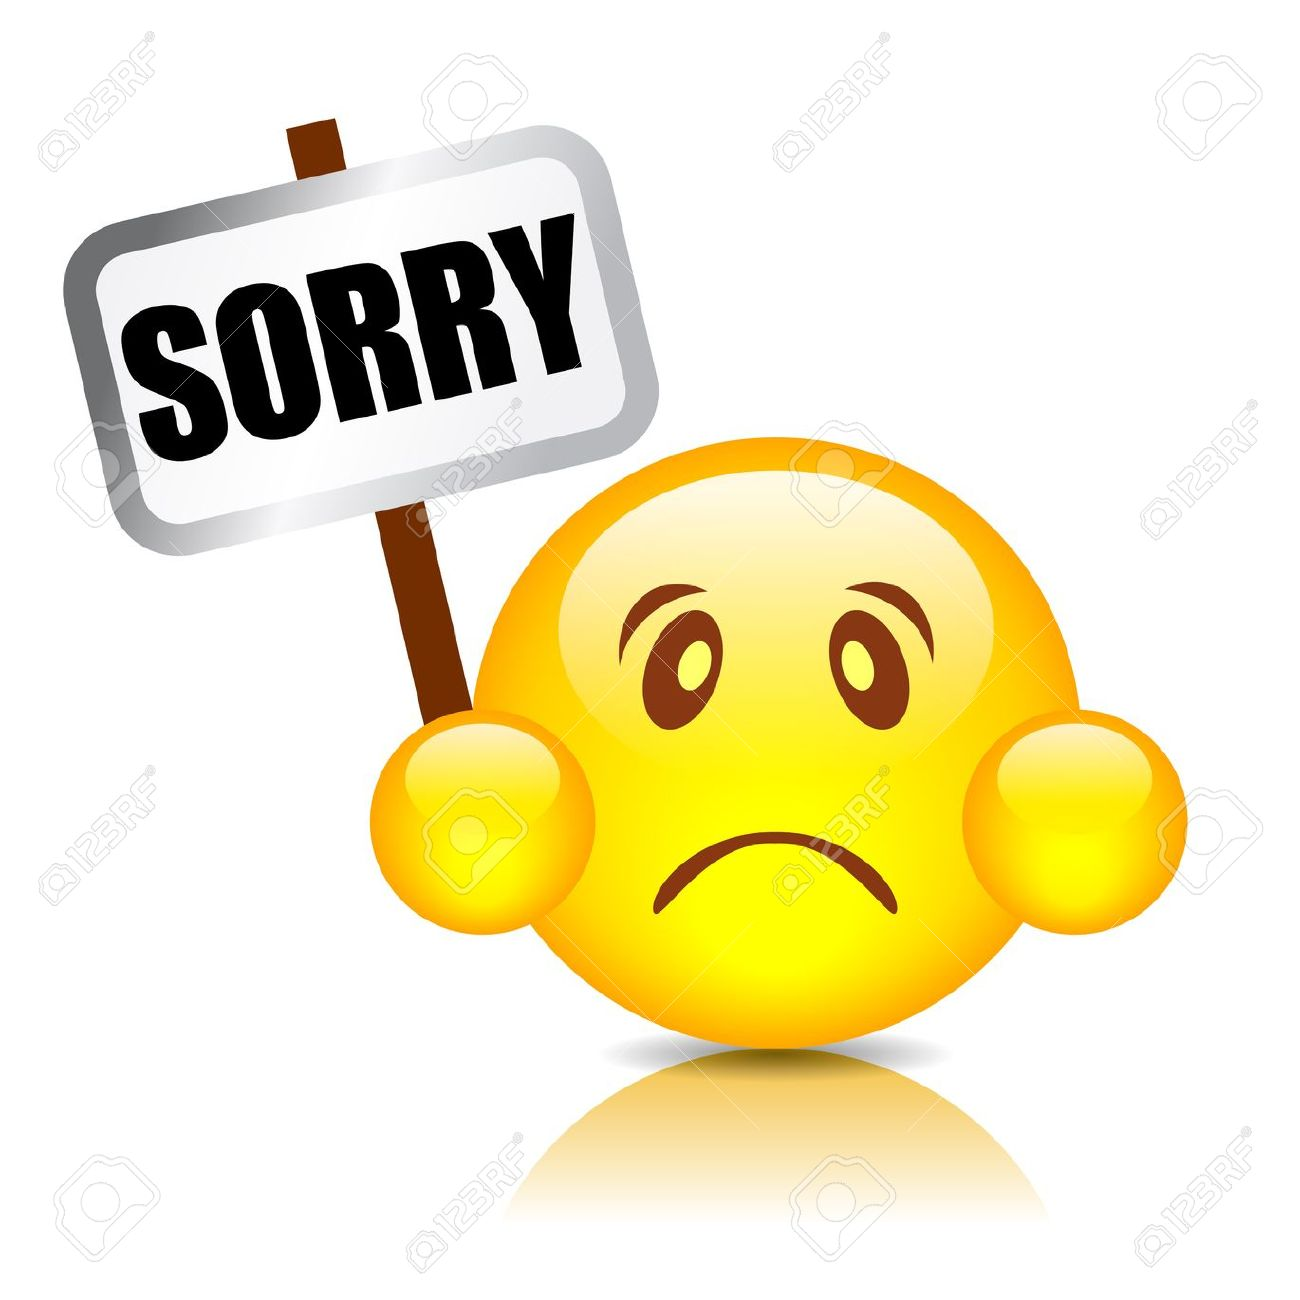 Sad Emoticon With Sorry Board